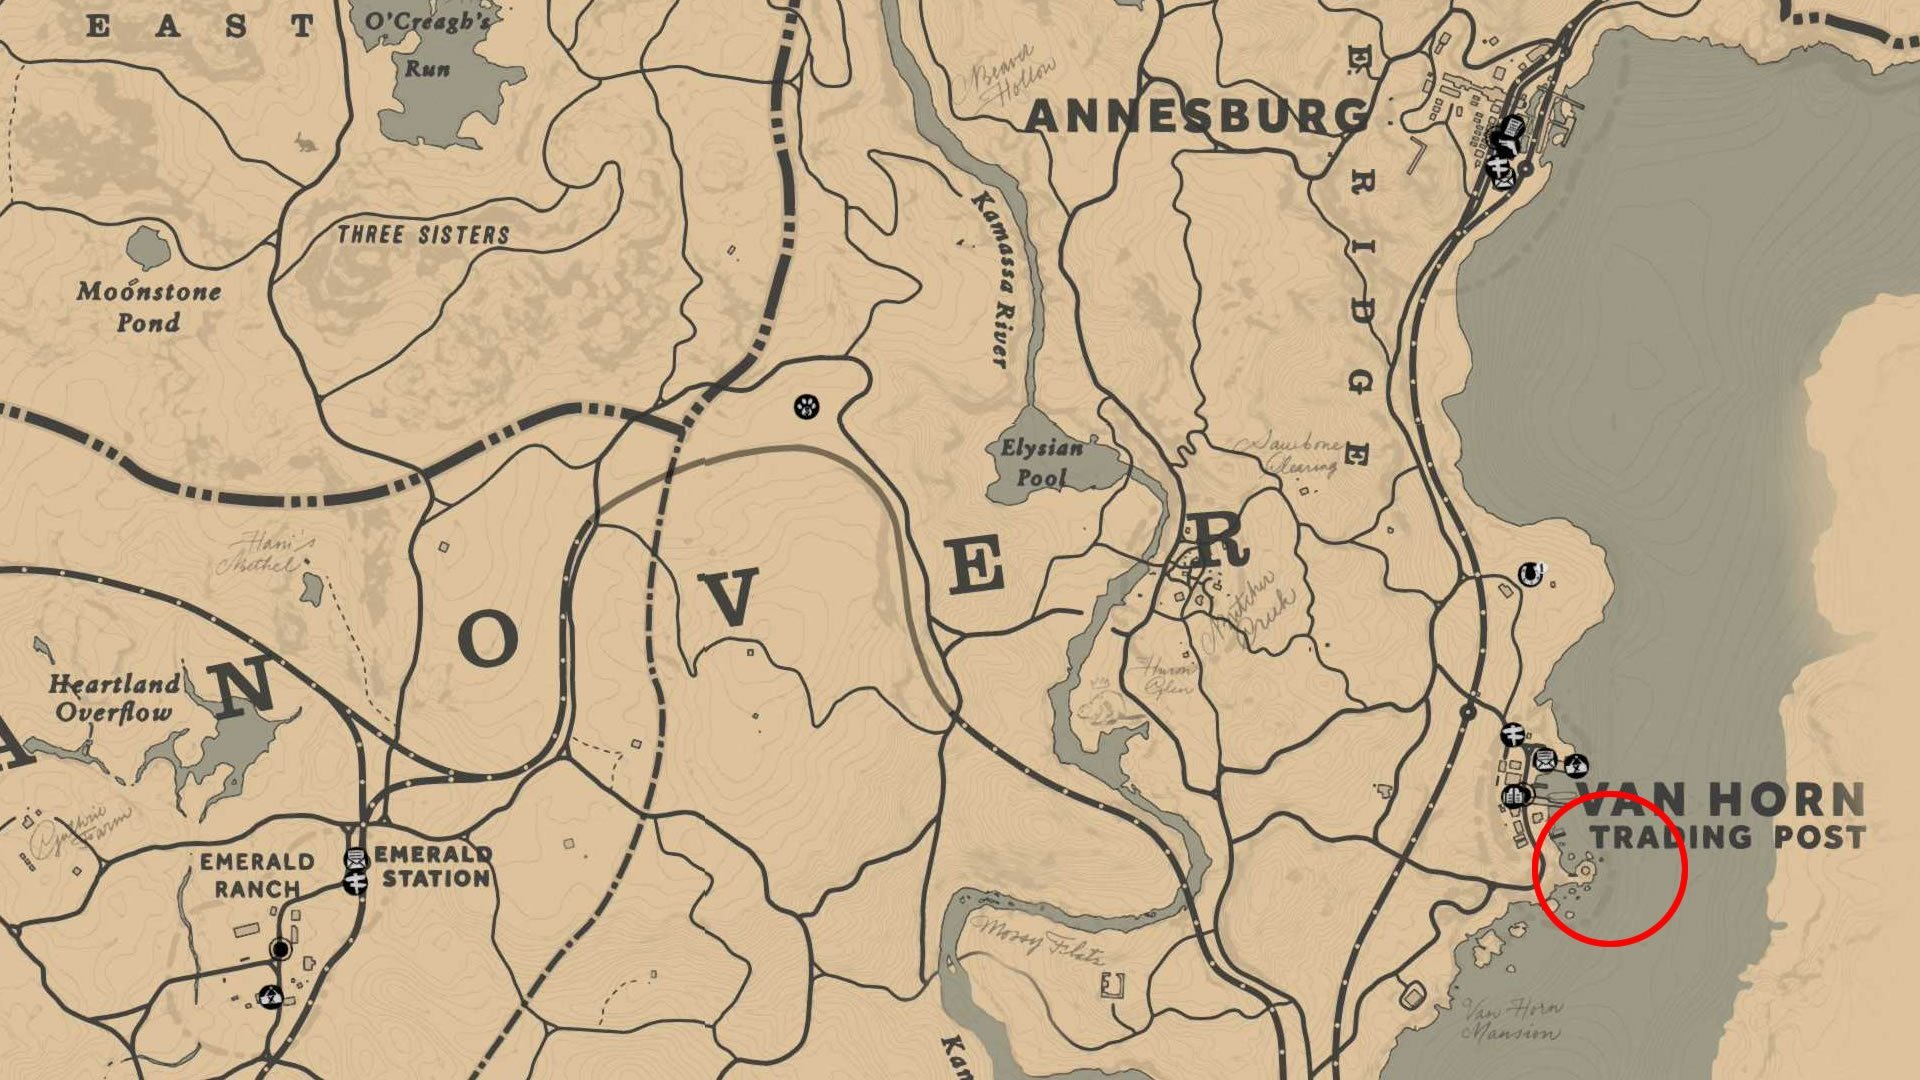 Where to catch Legendary Fish in RDR2